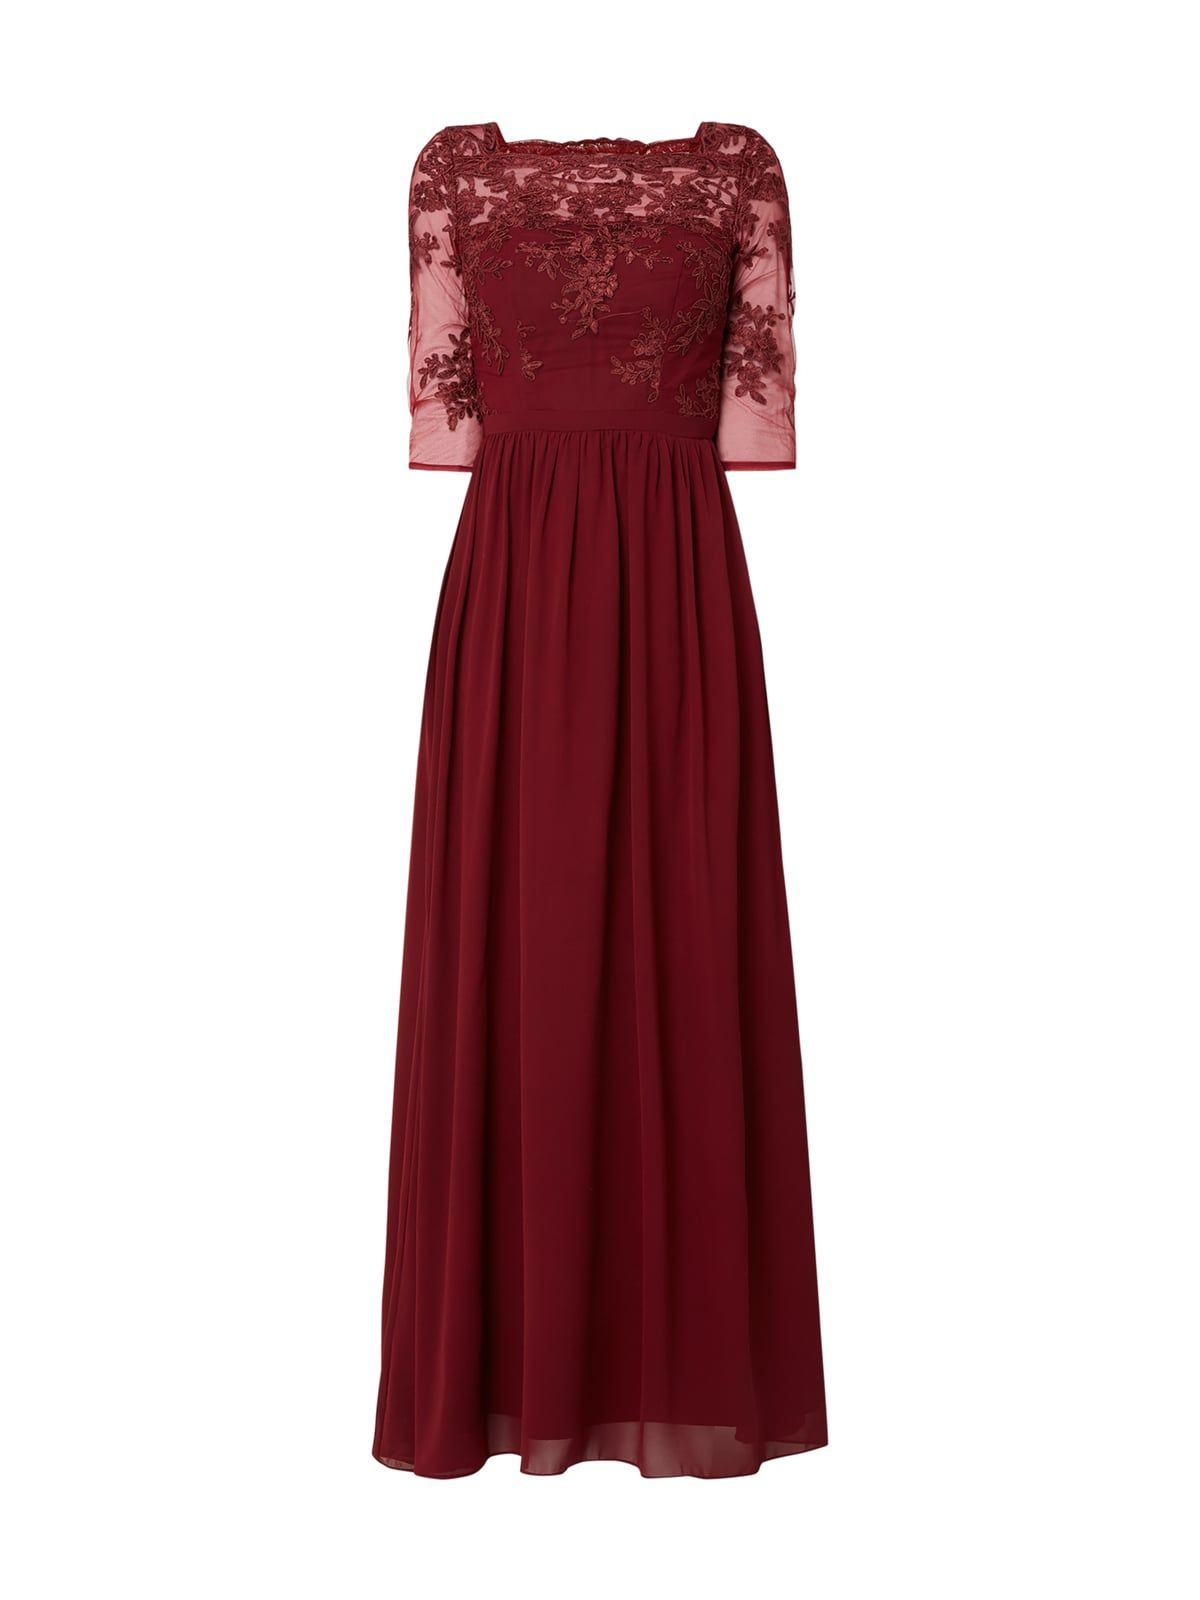 Formal Fantastisch Abendkleid Bordeaux Rot Galerie20 Genial Abendkleid Bordeaux Rot für 2019